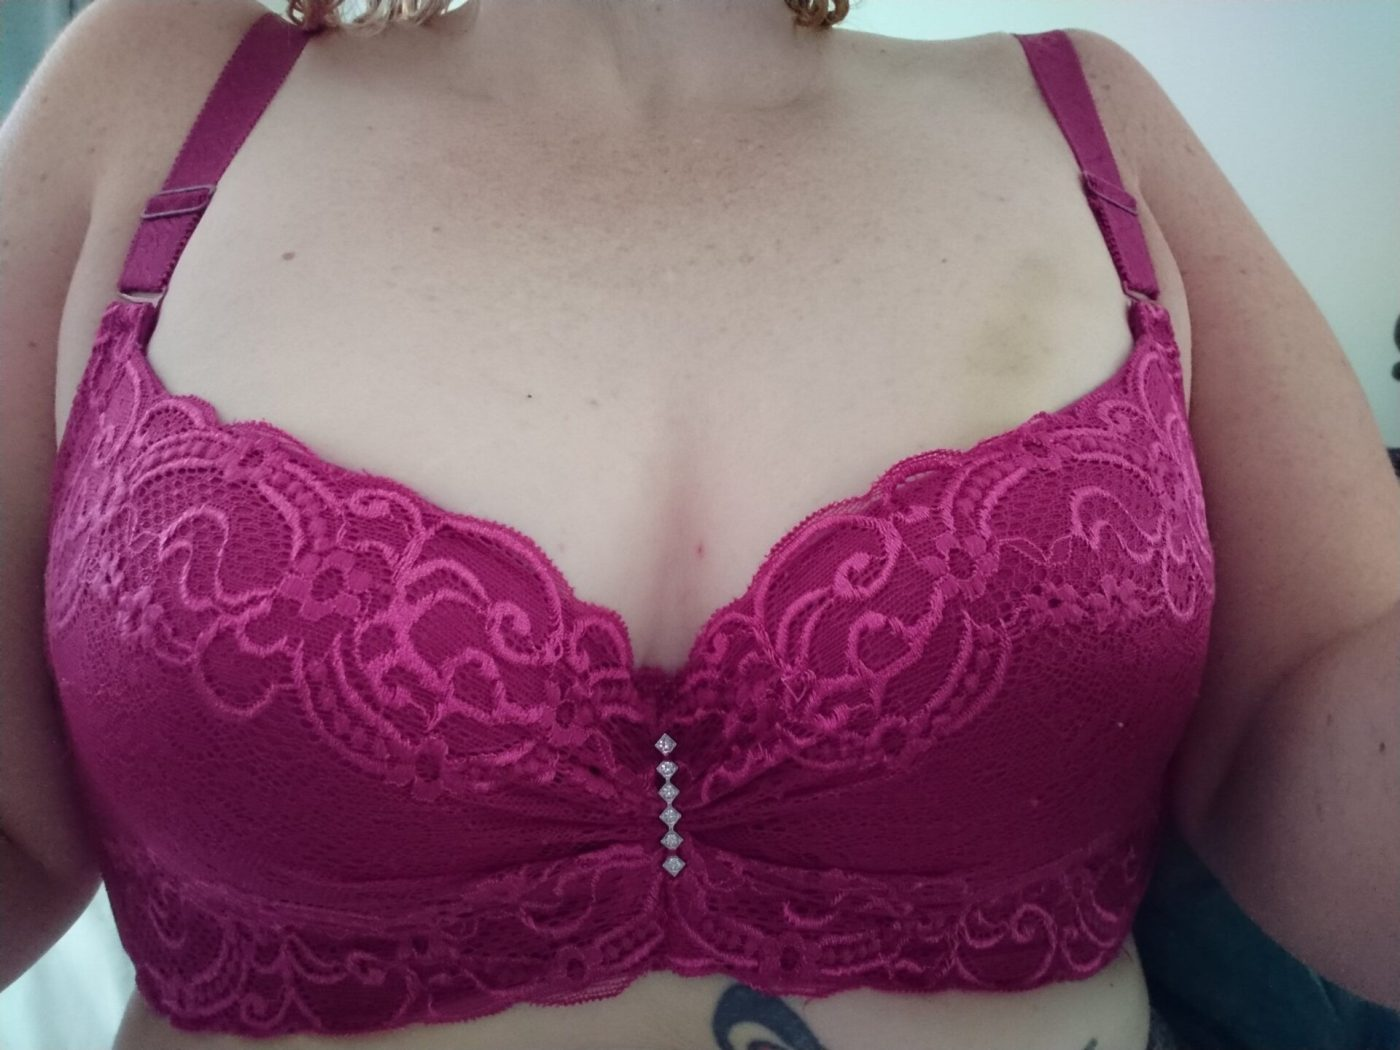 Lady wearing a cerise lacy bra, Framed by the fabric are traces of finger print bruises on her left breast